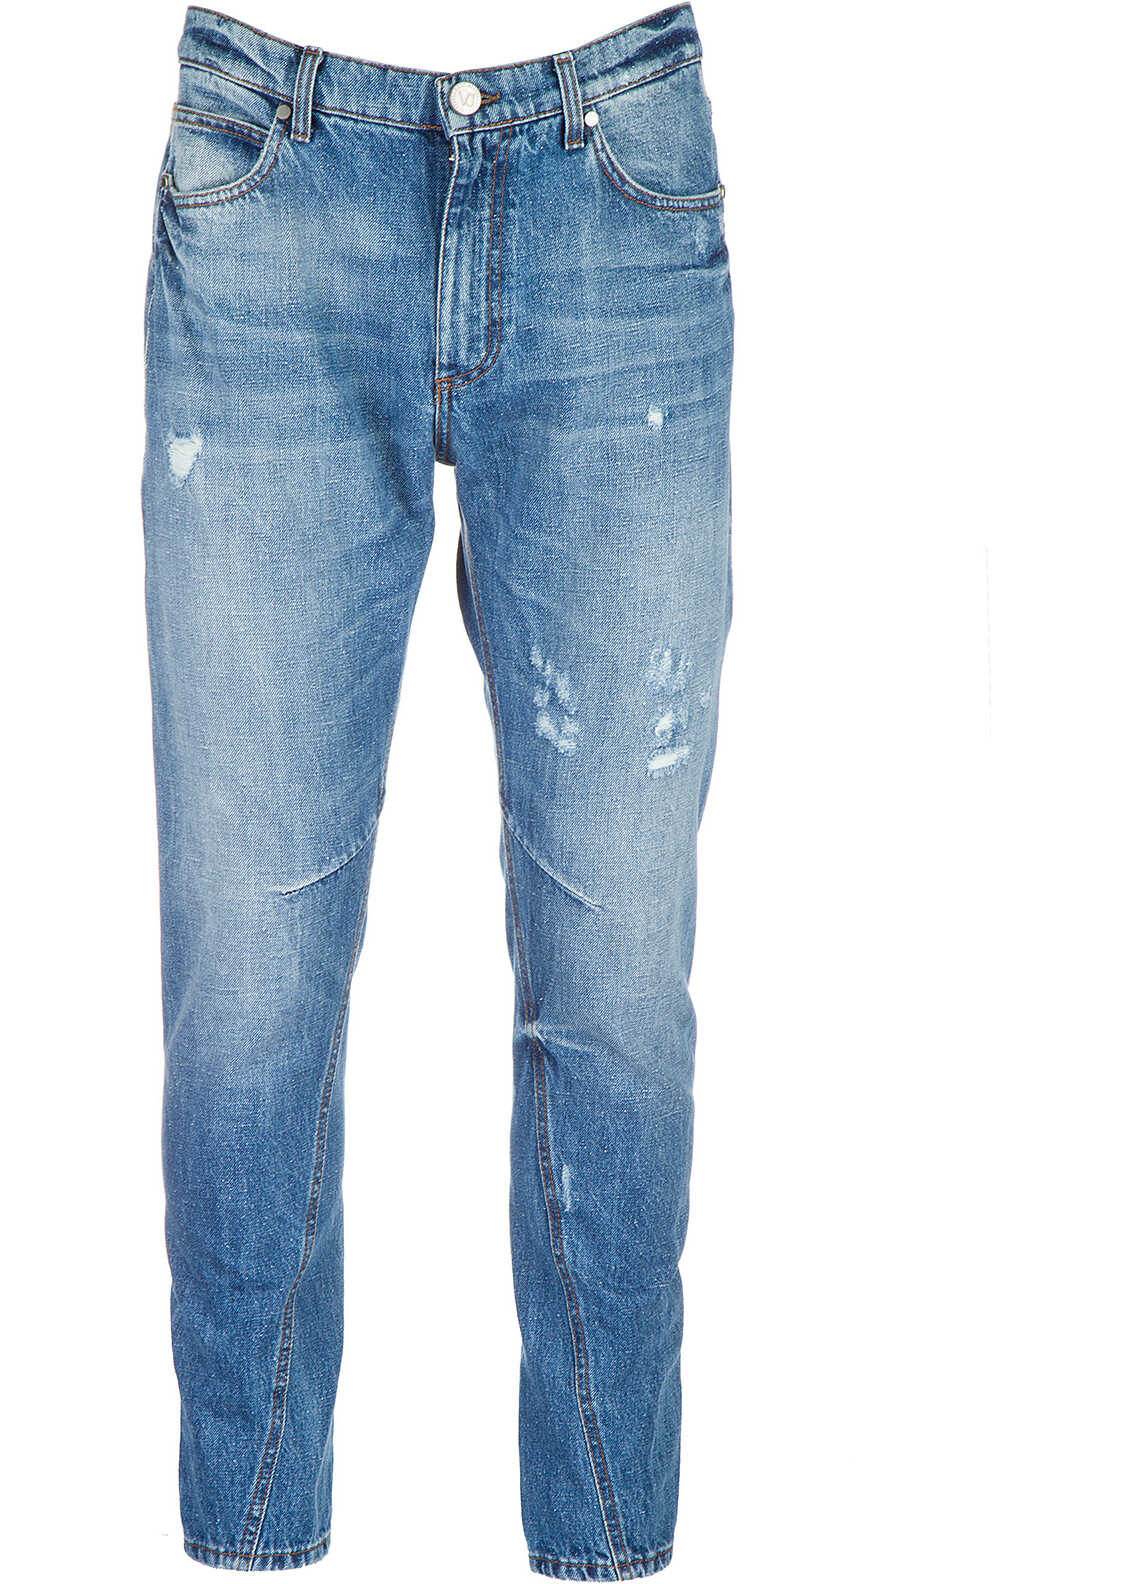 Versace Jeans Denim Slim* Blue